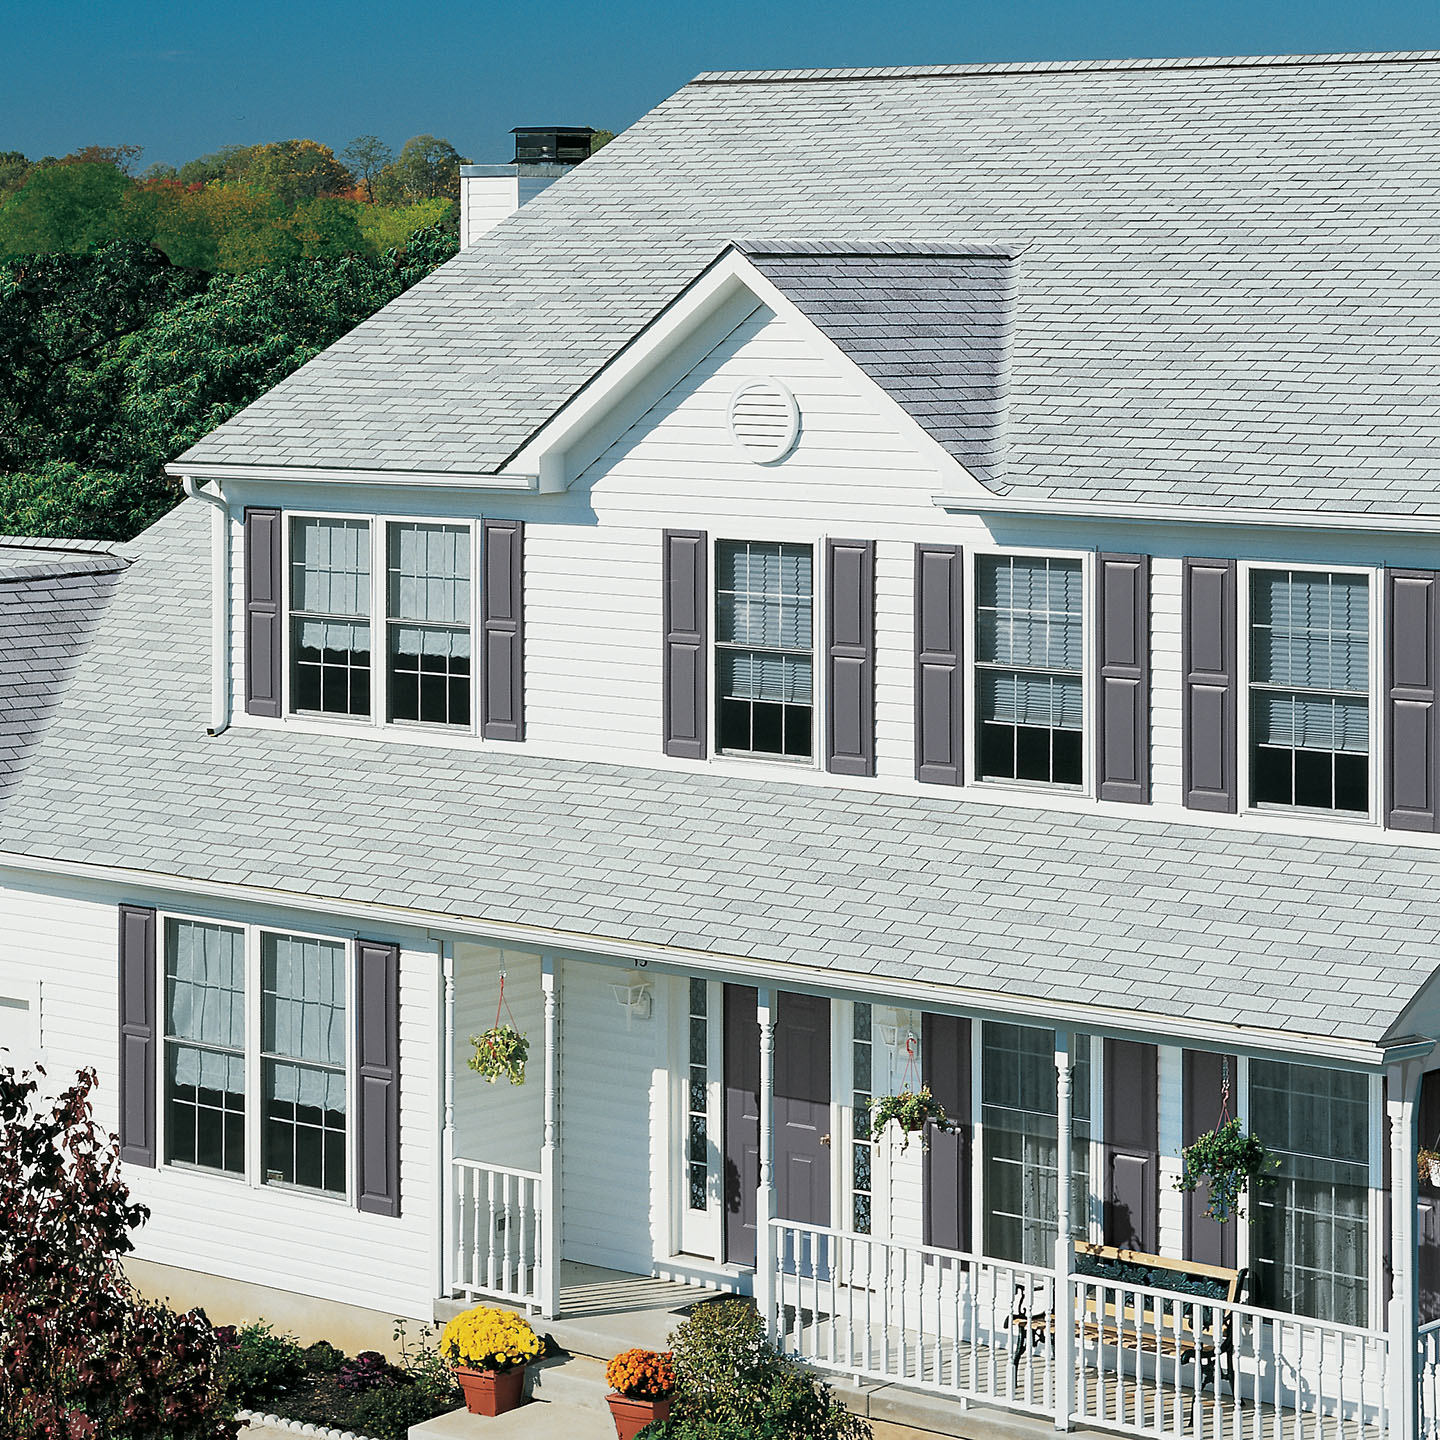 GAF Royal Sovereign 3 tab strip shingle -White